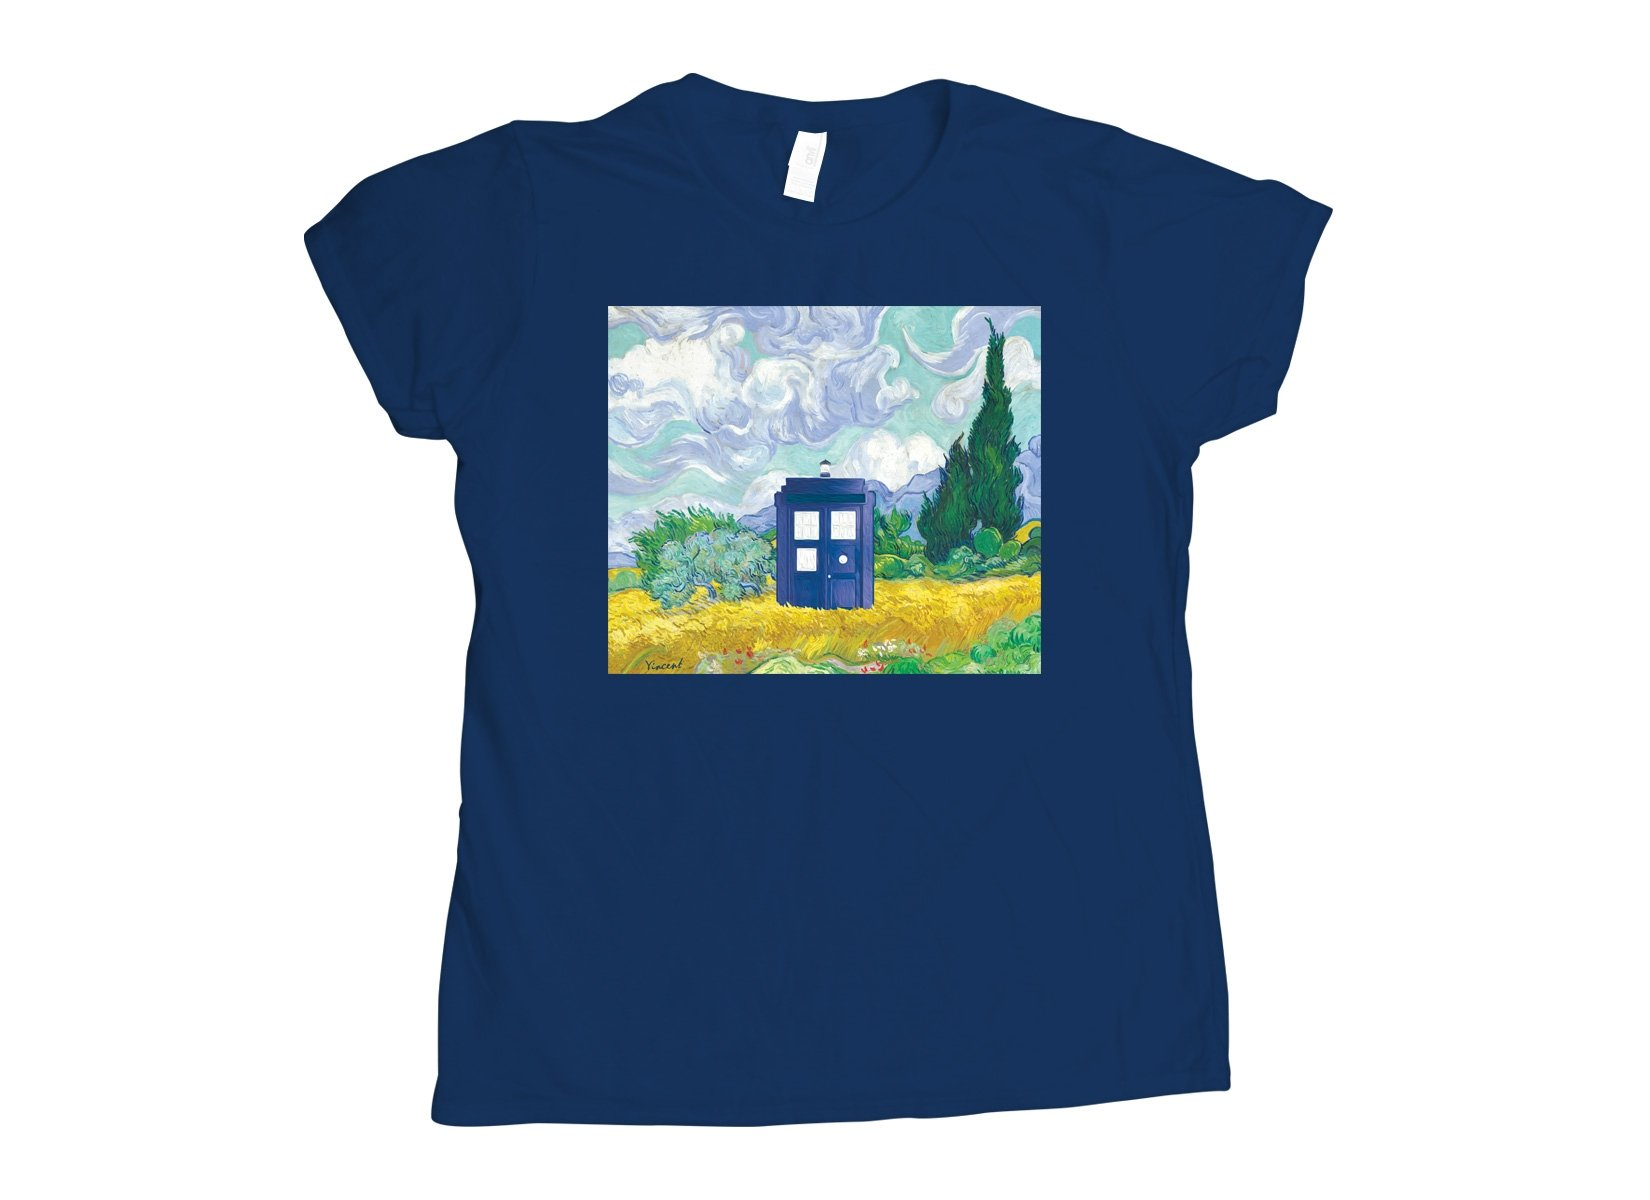 Visiting Van Gogh on Womens T-Shirt